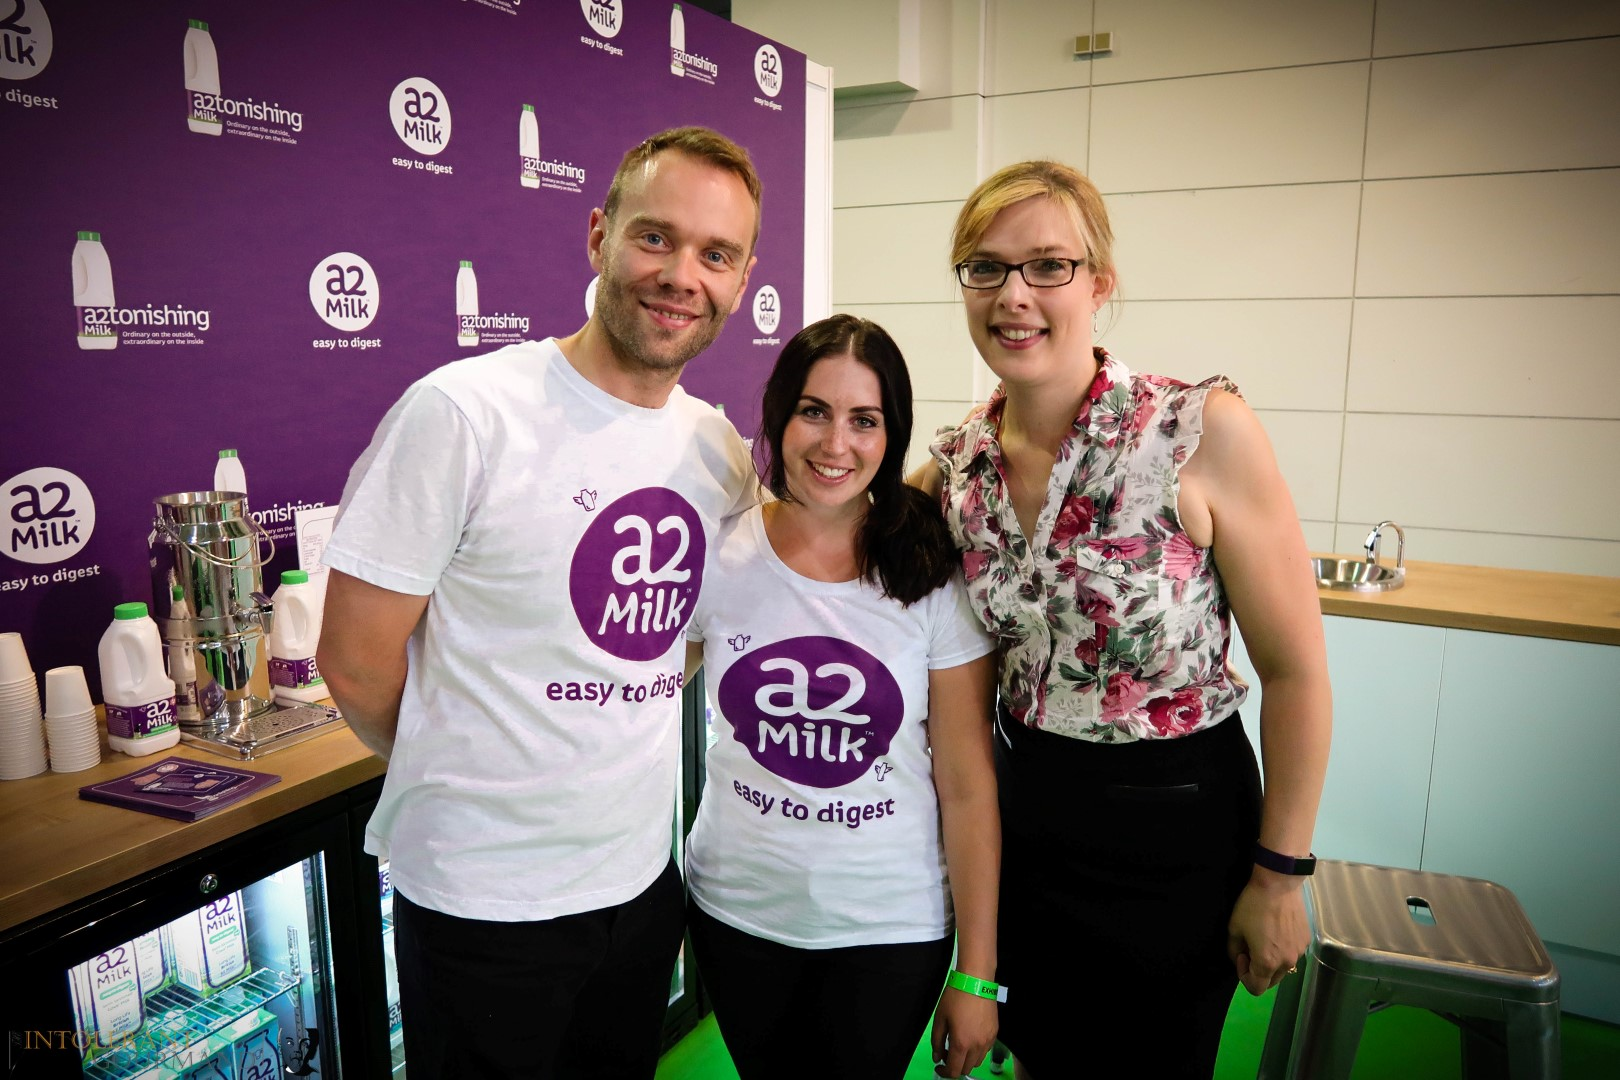 Allergy Show London 2017 - part of the team at a2 Milk working at the Allergy Show London Olympia! www.intolerantgourmand.com